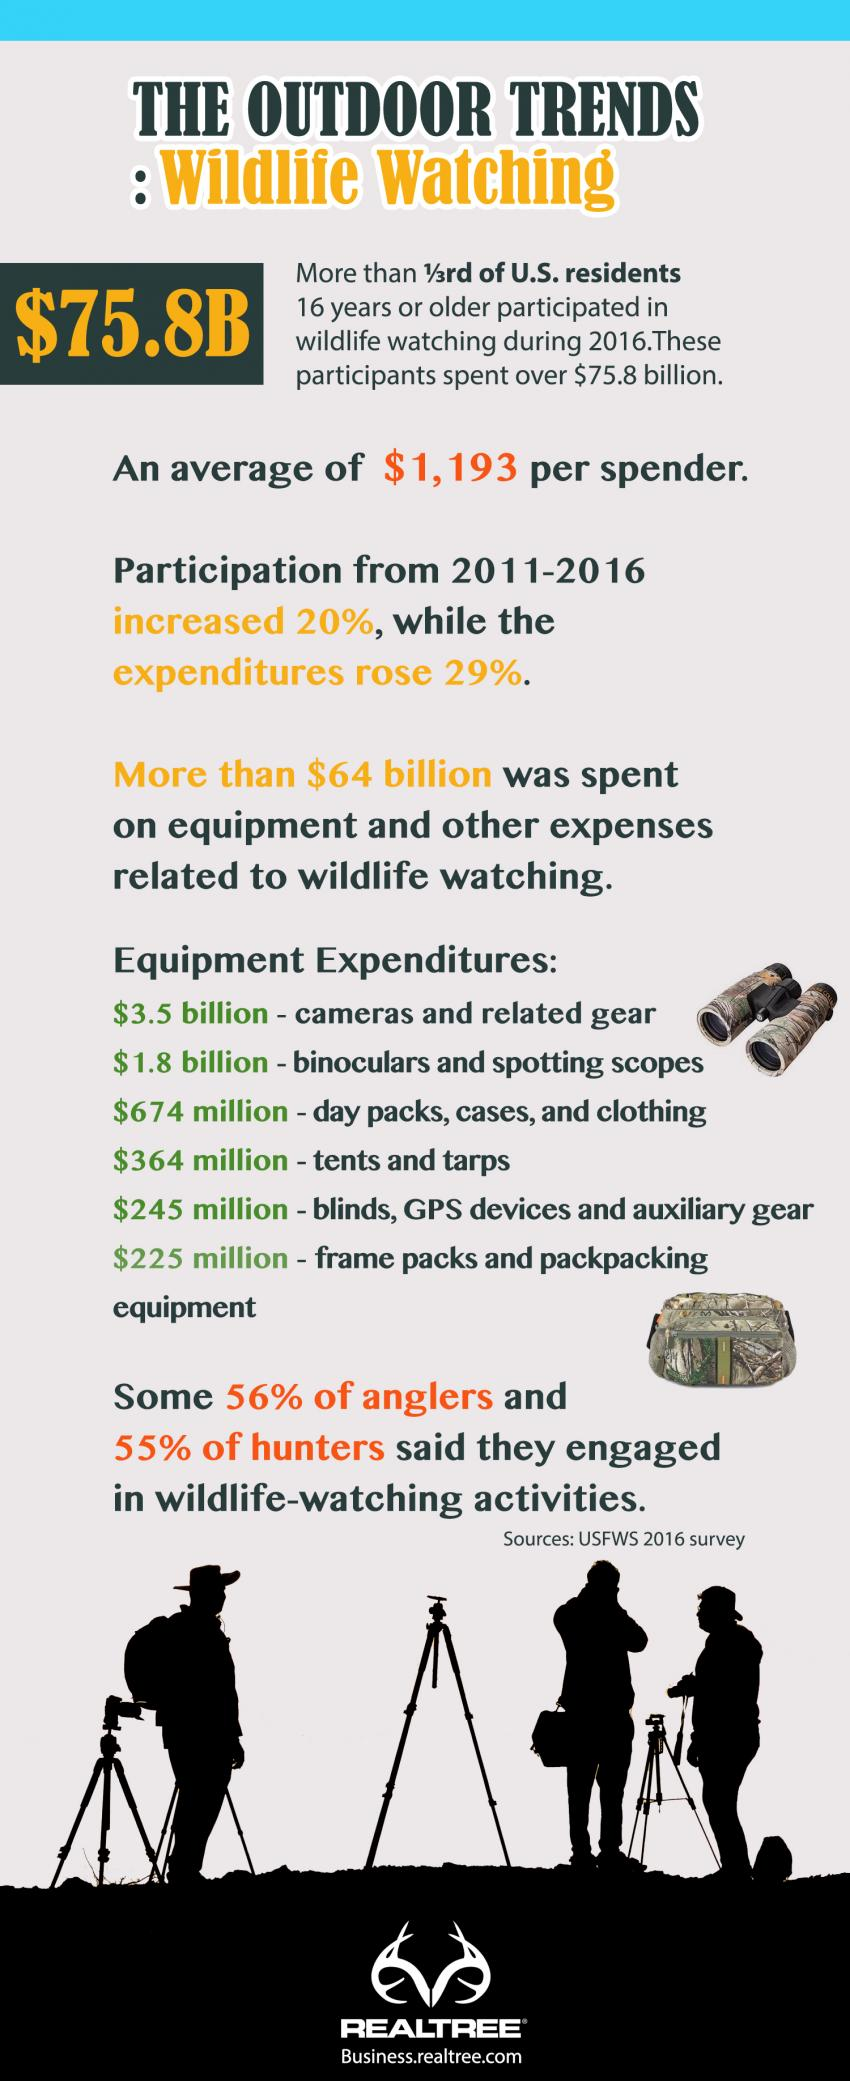 Wildlife Watching Expenditure Report 2017 | Realtree B2B